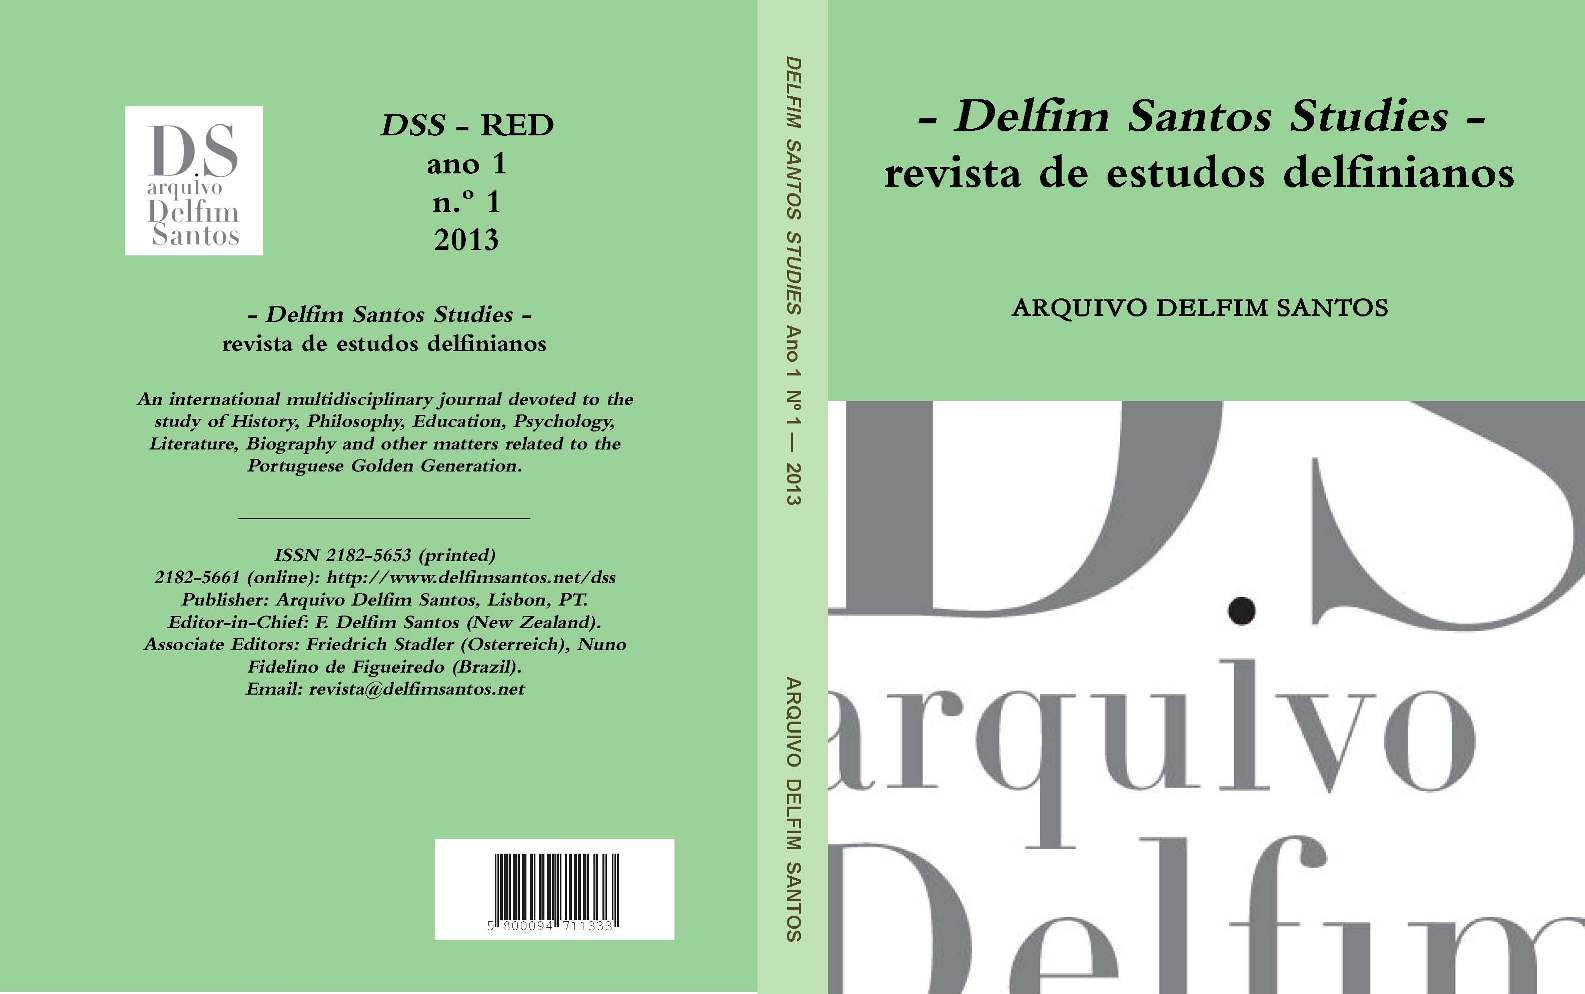 DSS_1_1_2013_cover